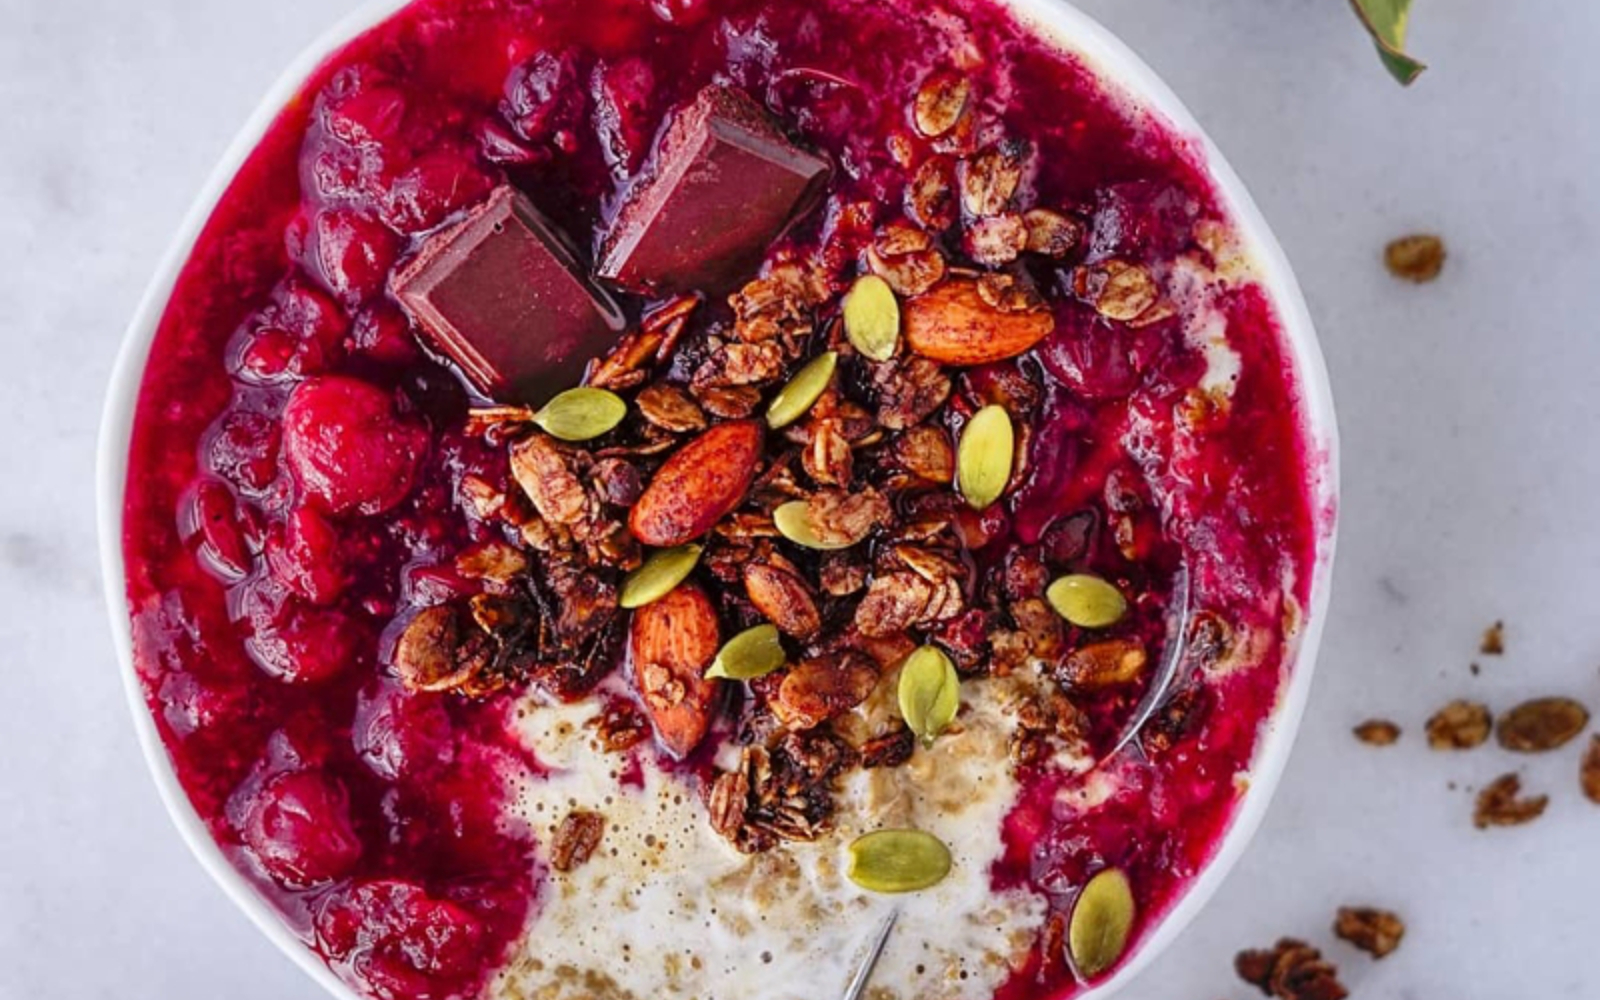 Vegan Gluten-Free Gingerbread Oatmeal with Warm Cranberry Orange Sauce topped with seeds and chocolate